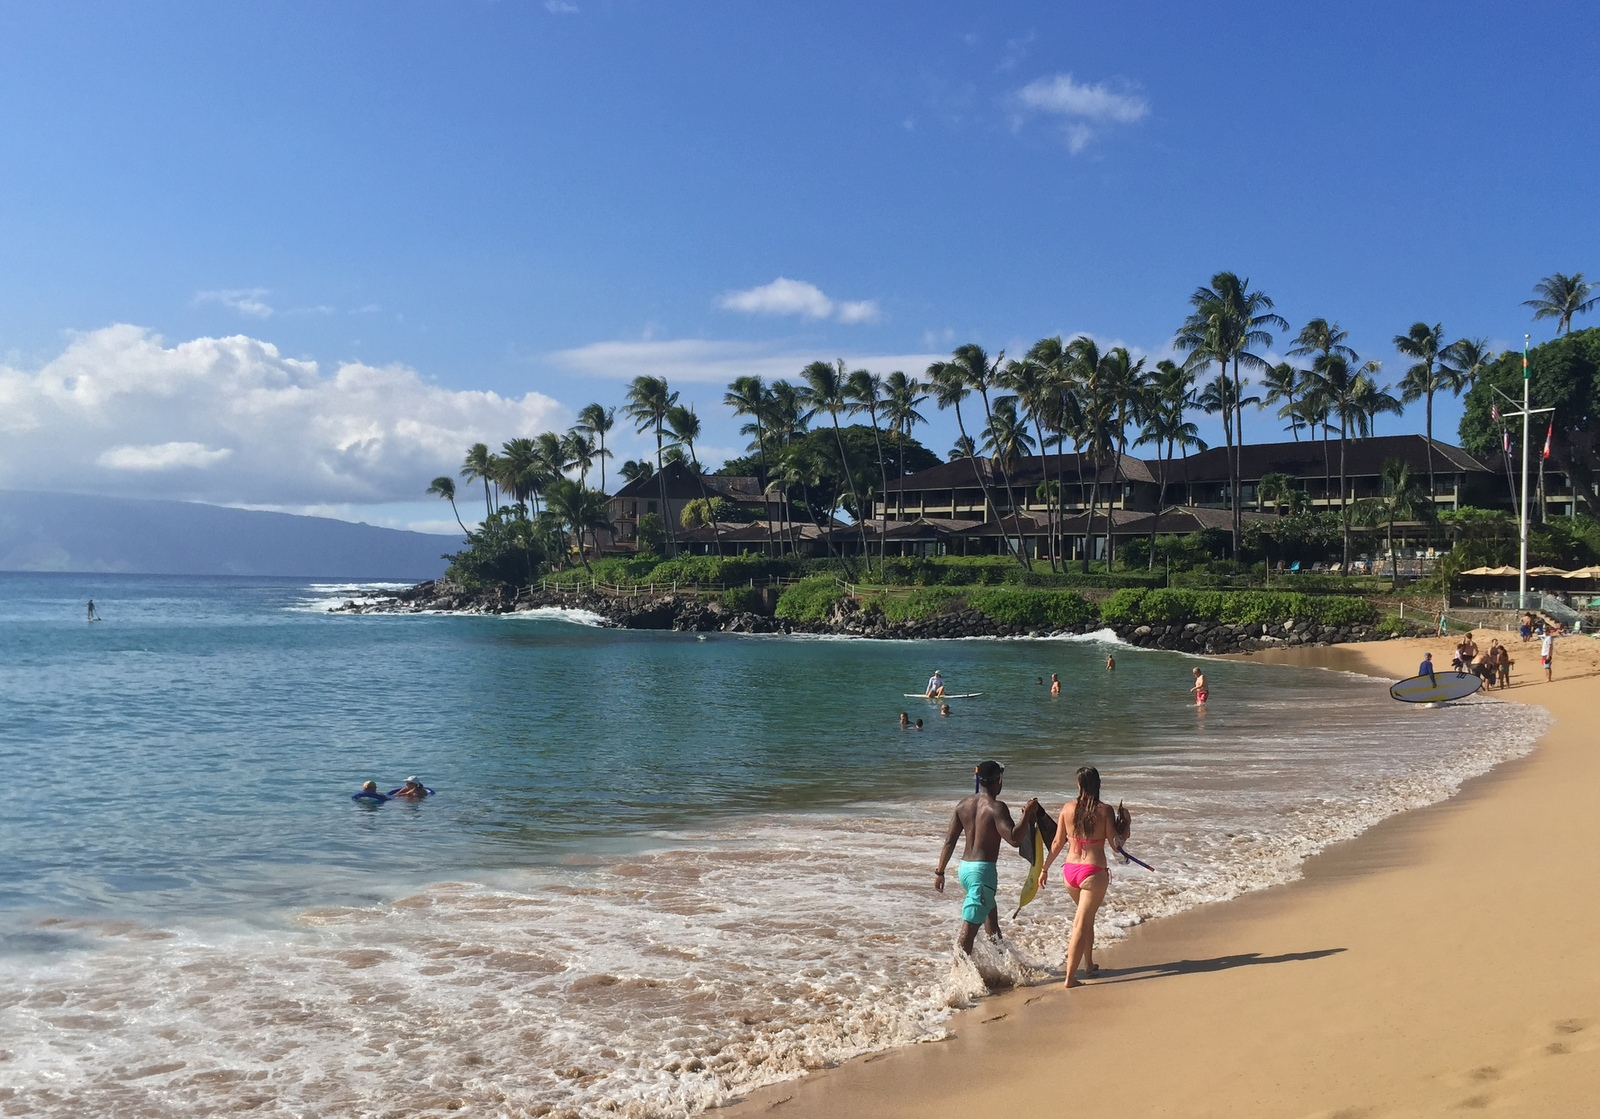 Maui is a great destination that's easy to book with Aeroplan points.